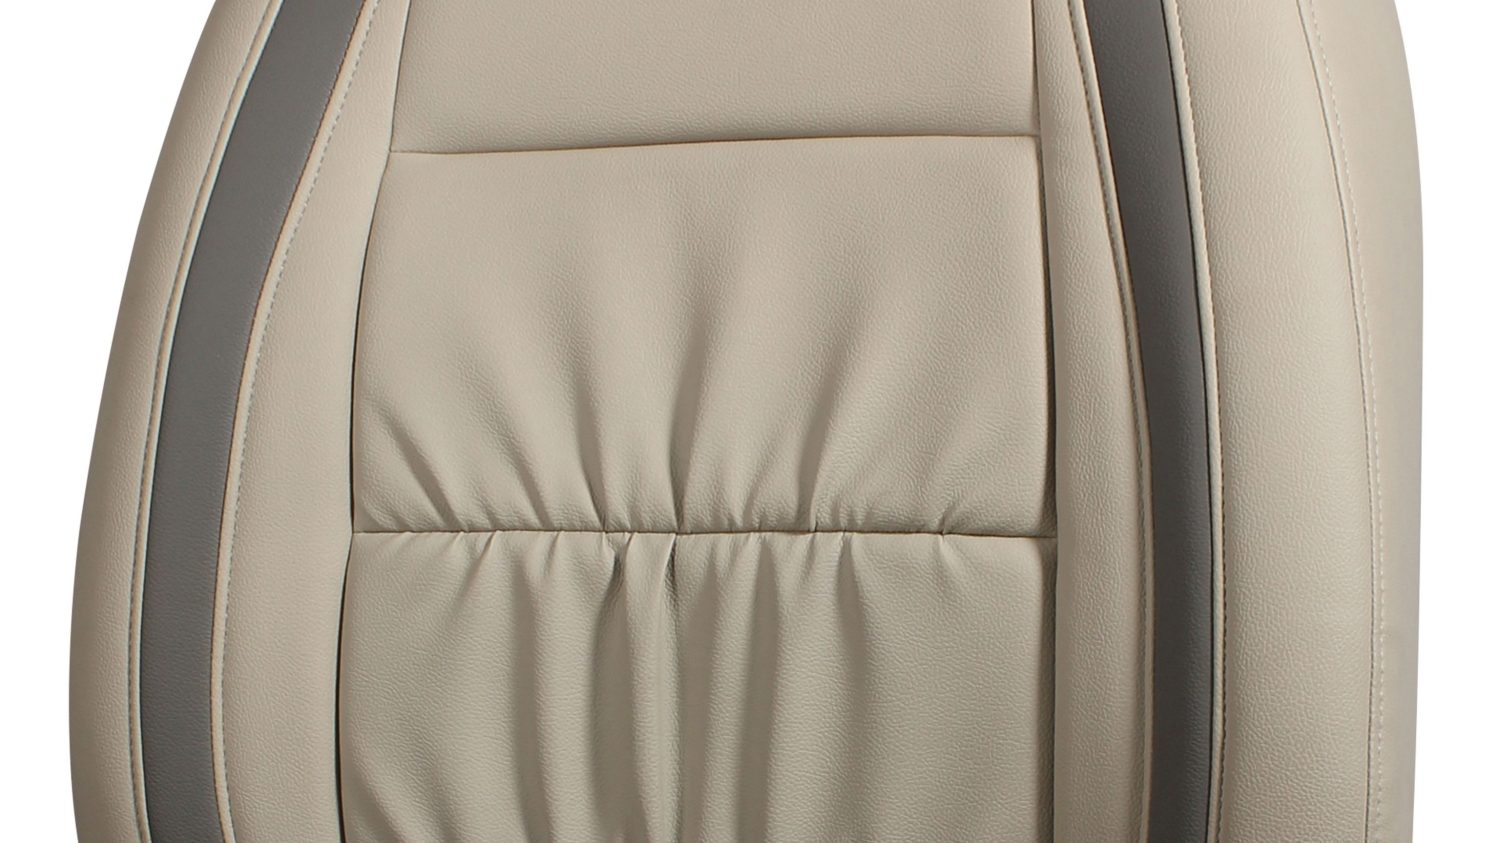 Seat Cover - Art Leather + Leather - Beige + Greige